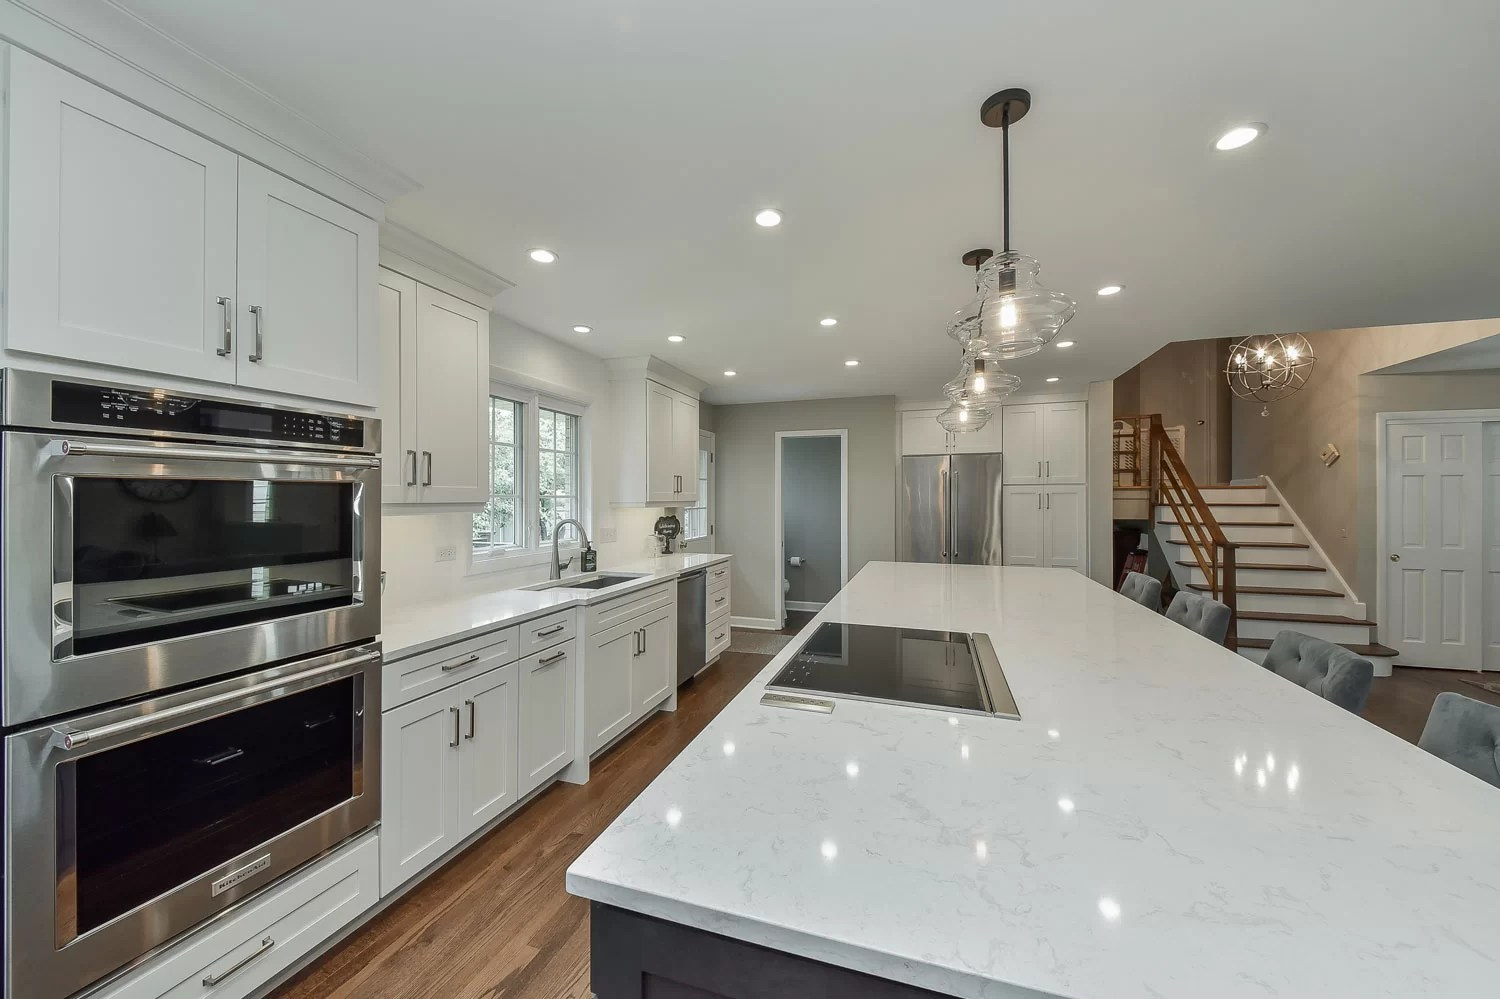 Dale Tracy39s Kitchen Remodel Pictures Home Remodeling